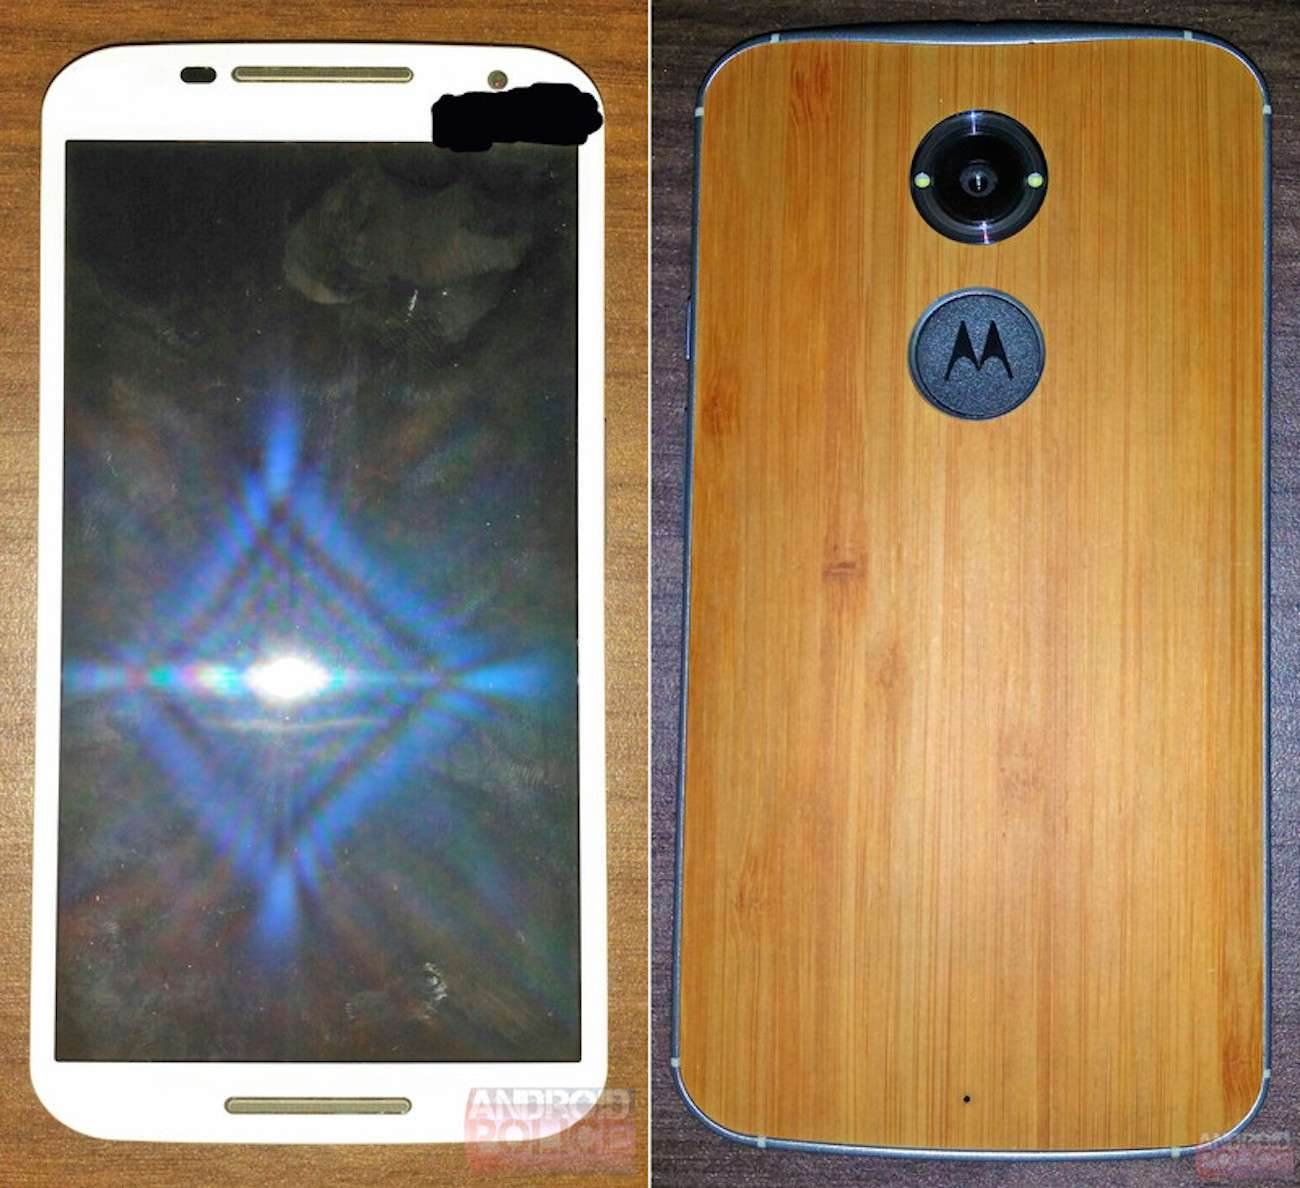 moto_x1_leaked_photo2